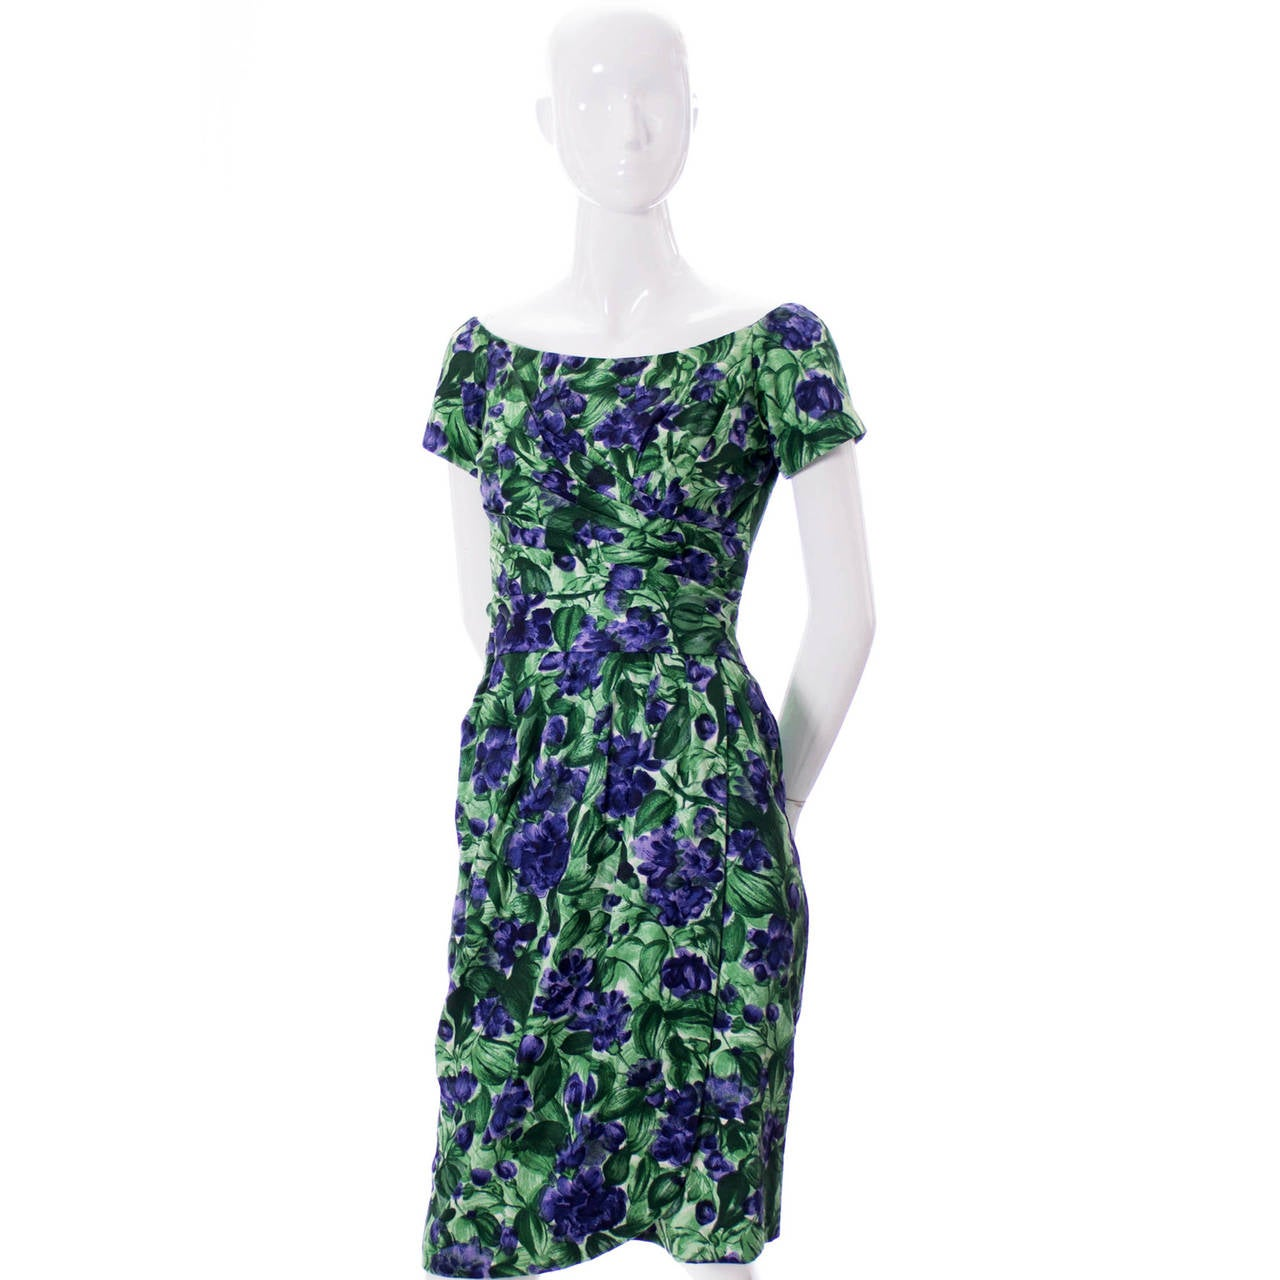 Vintage Ceil Chapman 1950s Dress Green Purple Floral Print